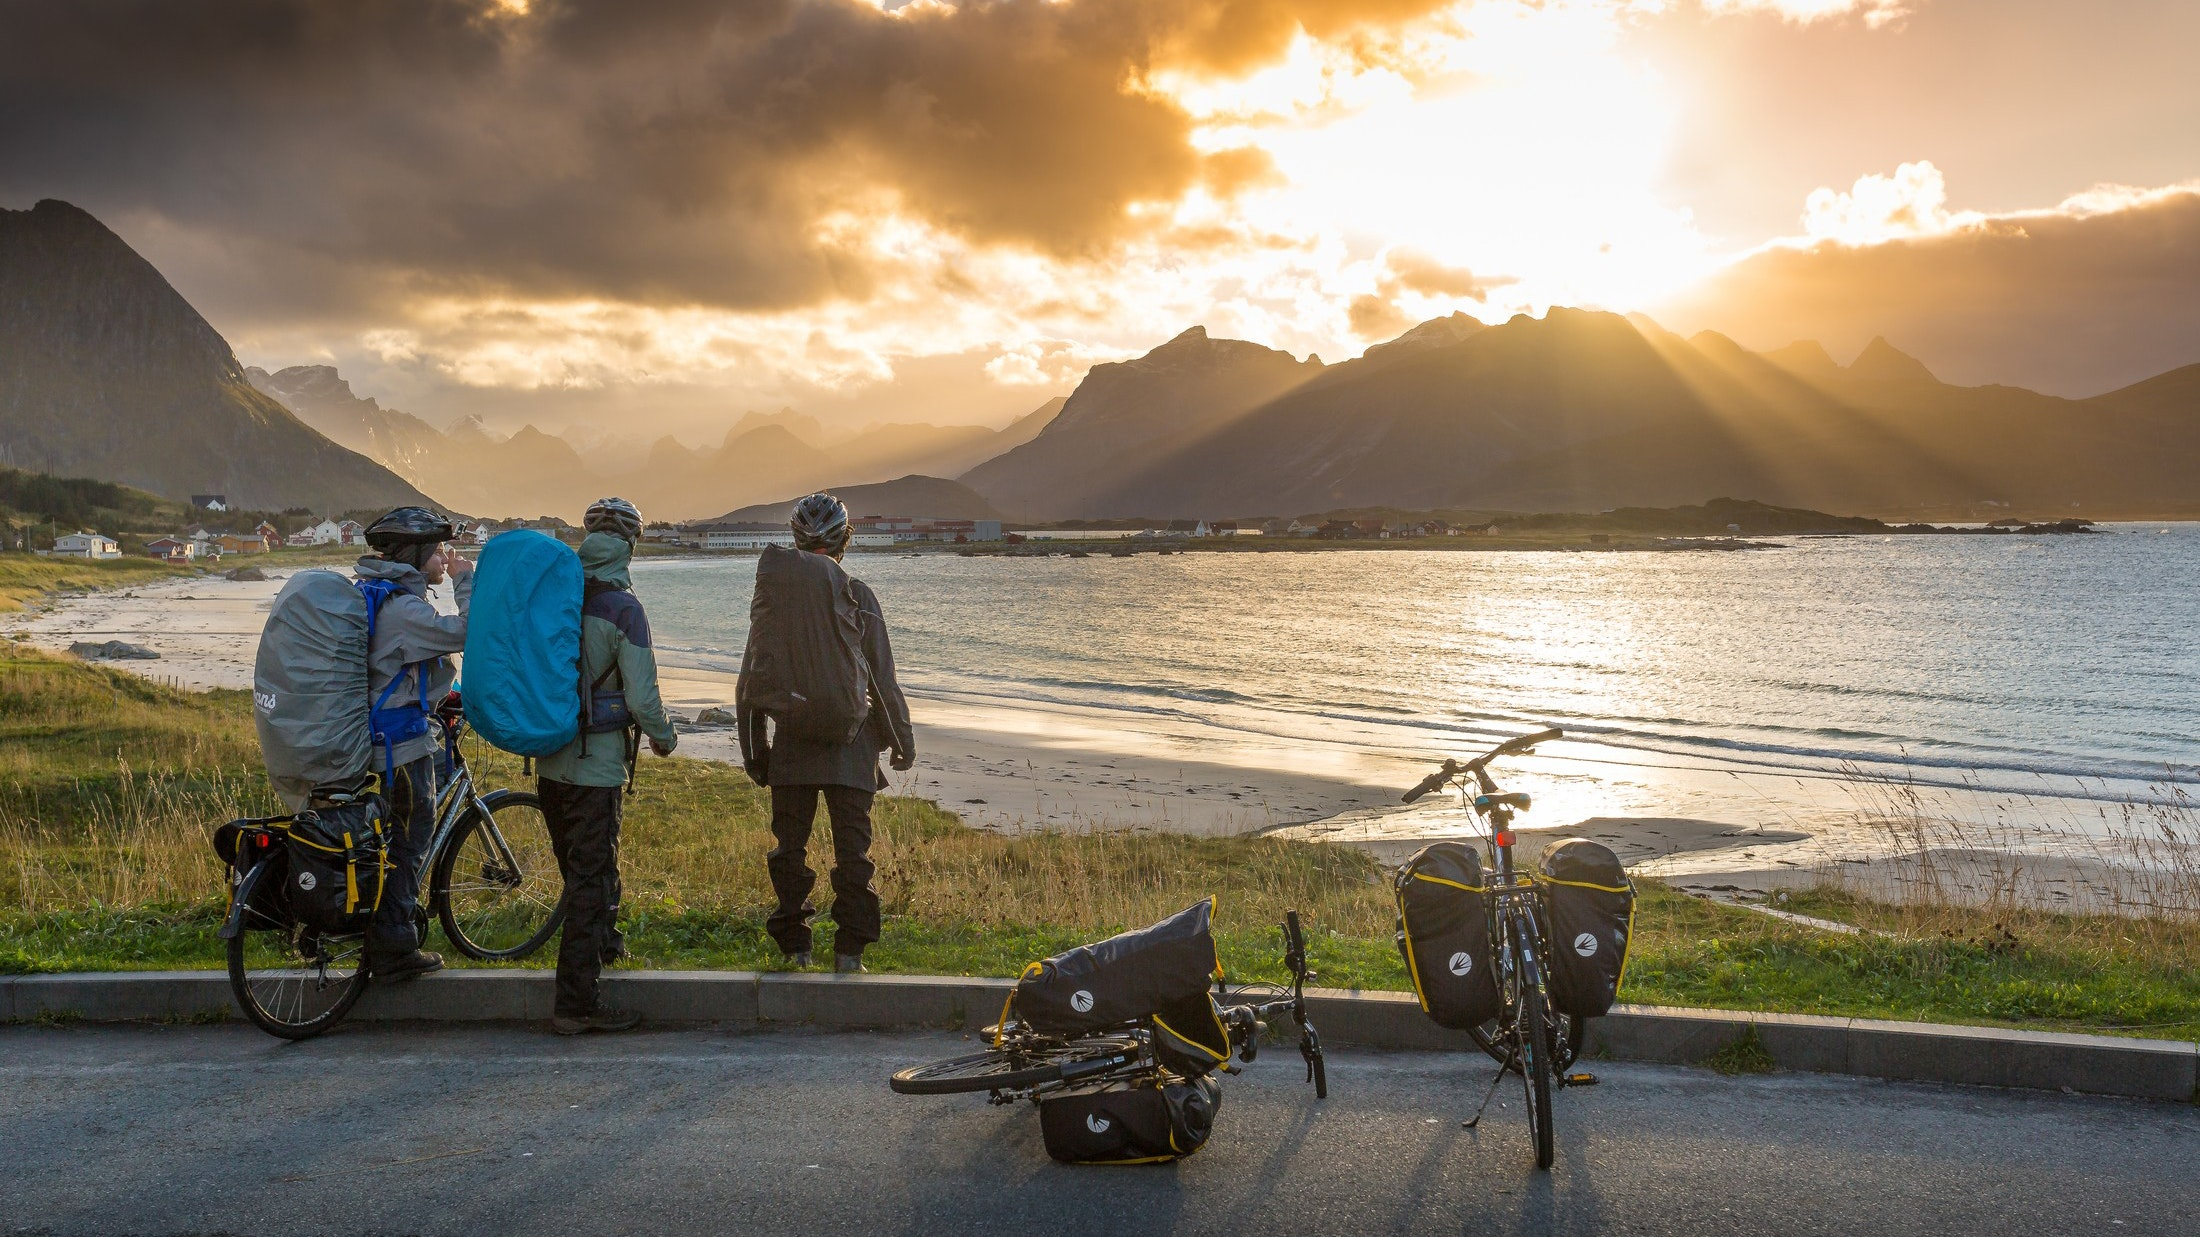 Norway's freedom to roam rights make it easy to find a place to camp on a long-distance bike trip.